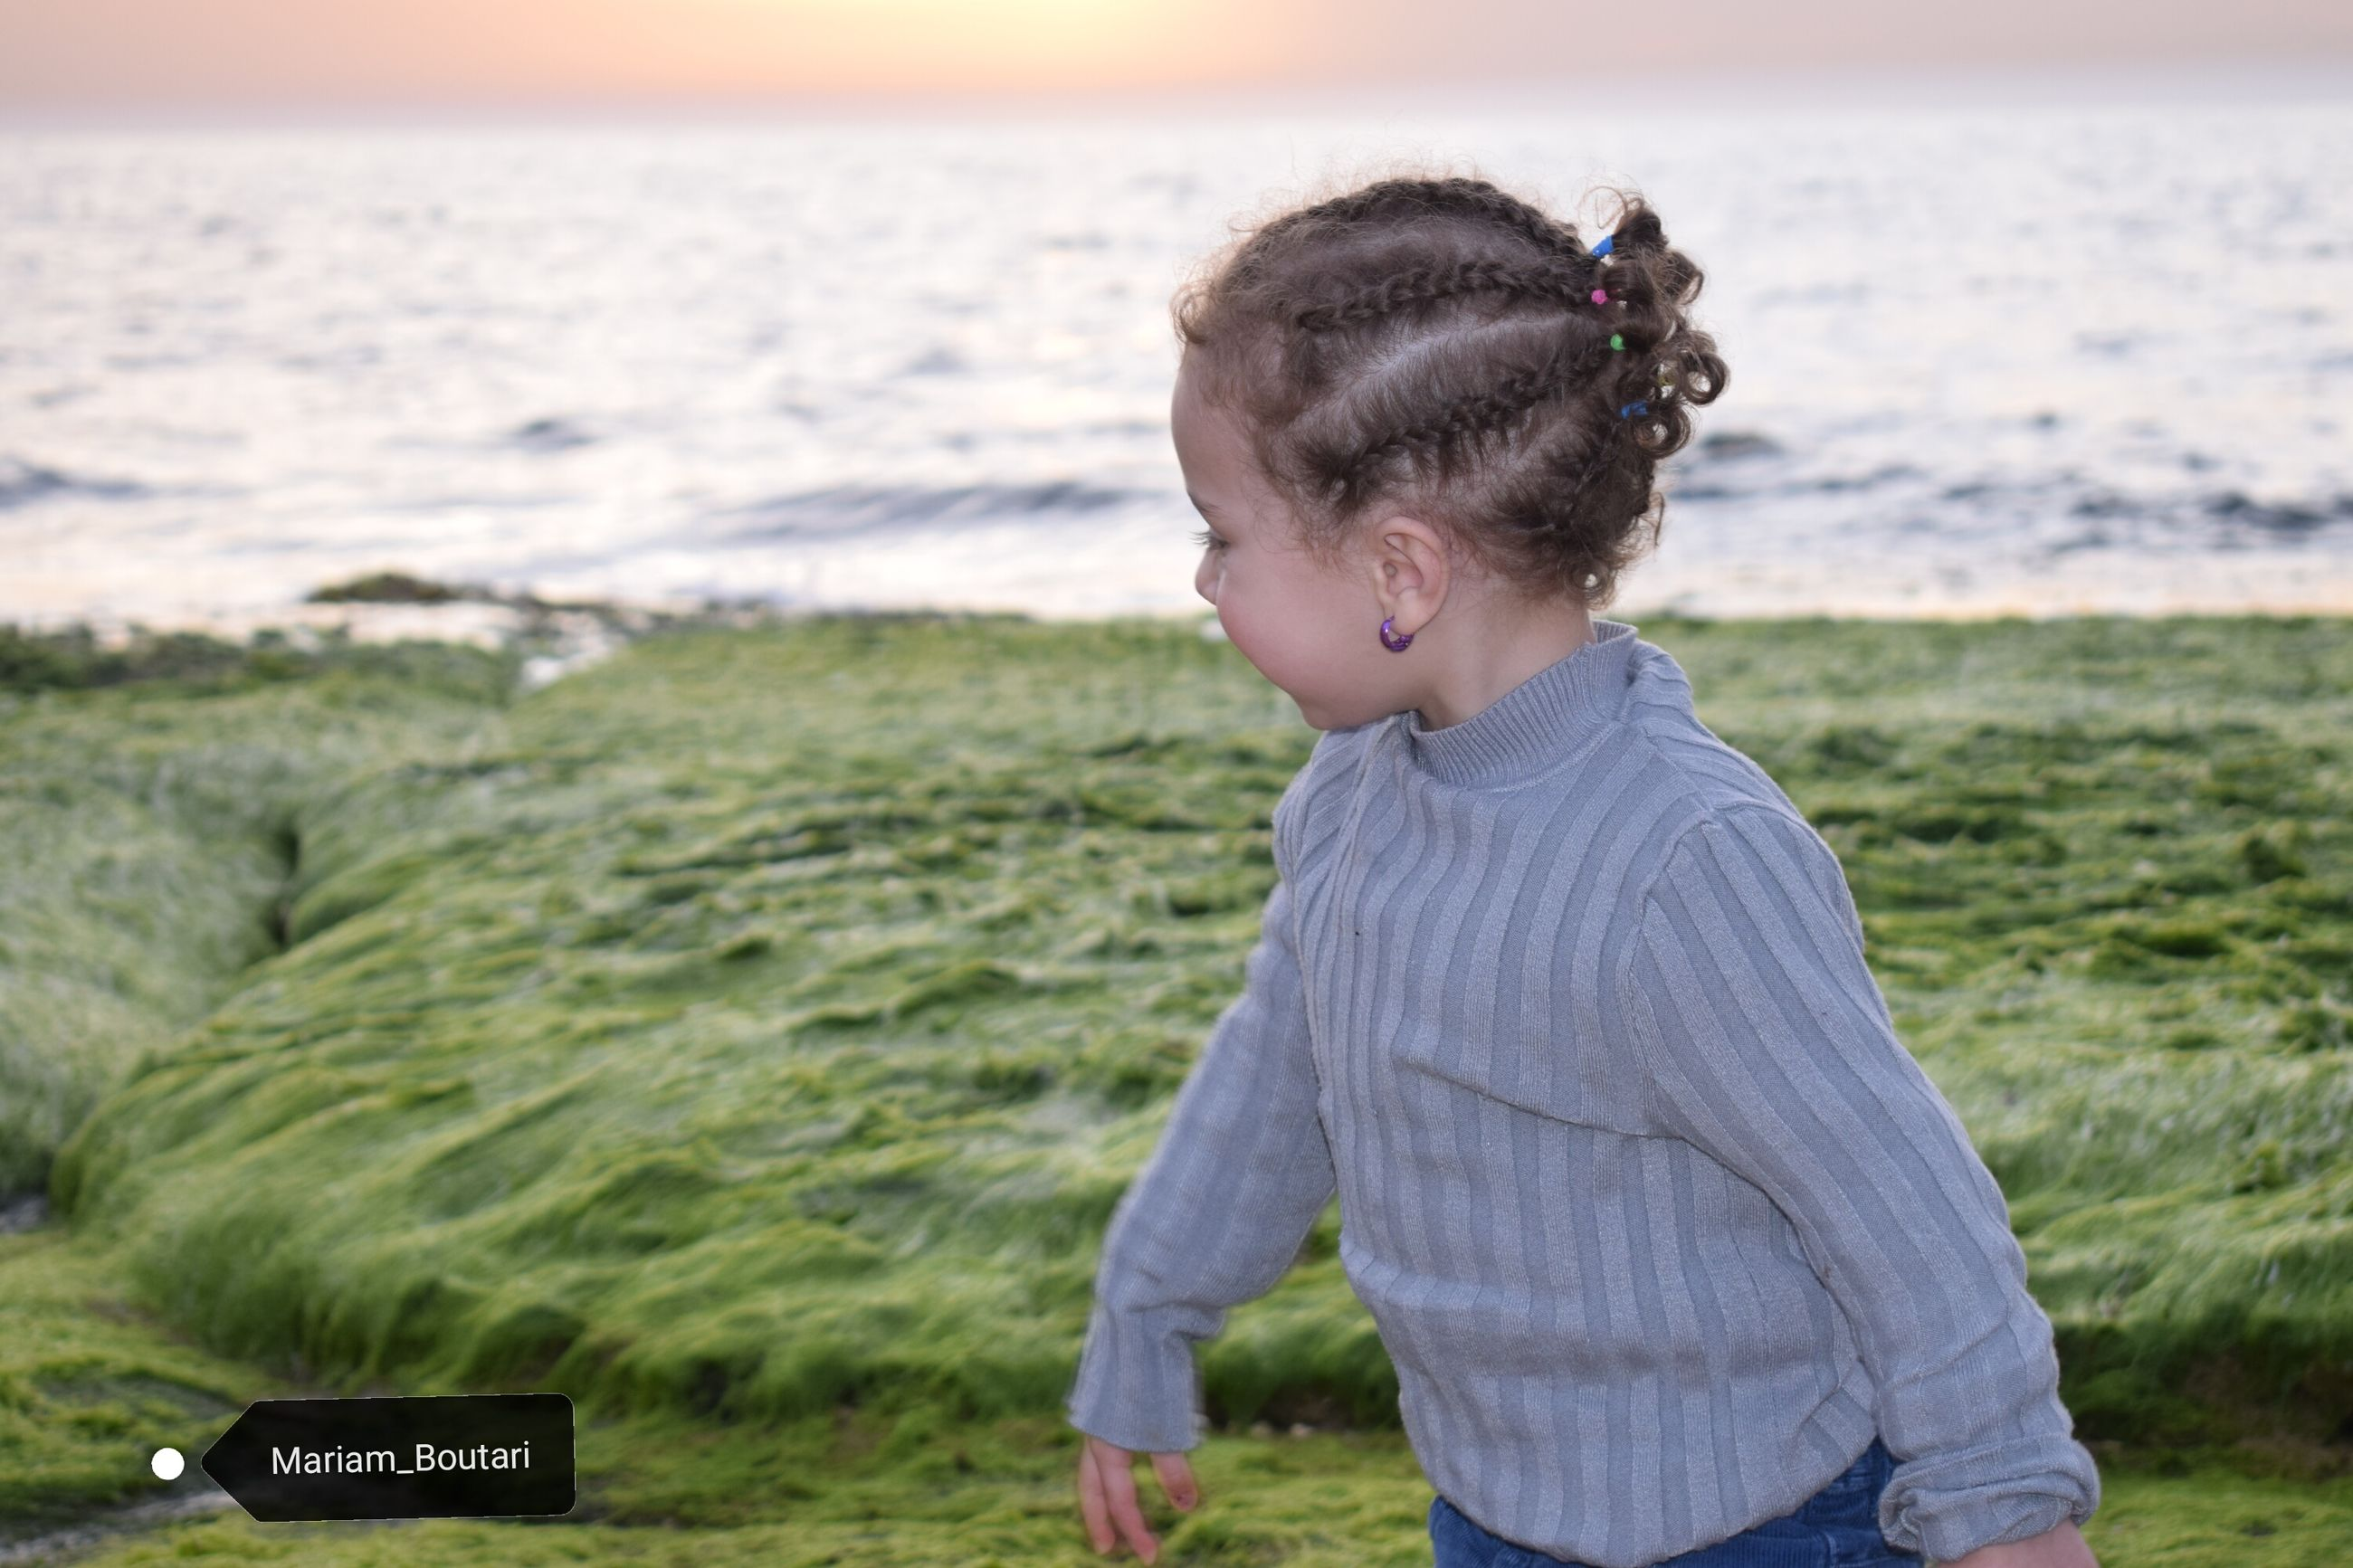 water, sea, land, child, one person, childhood, casual clothing, real people, beach, leisure activity, side view, nature, focus on foreground, day, lifestyles, standing, horizon over water, outdoors, hairstyle, innocence